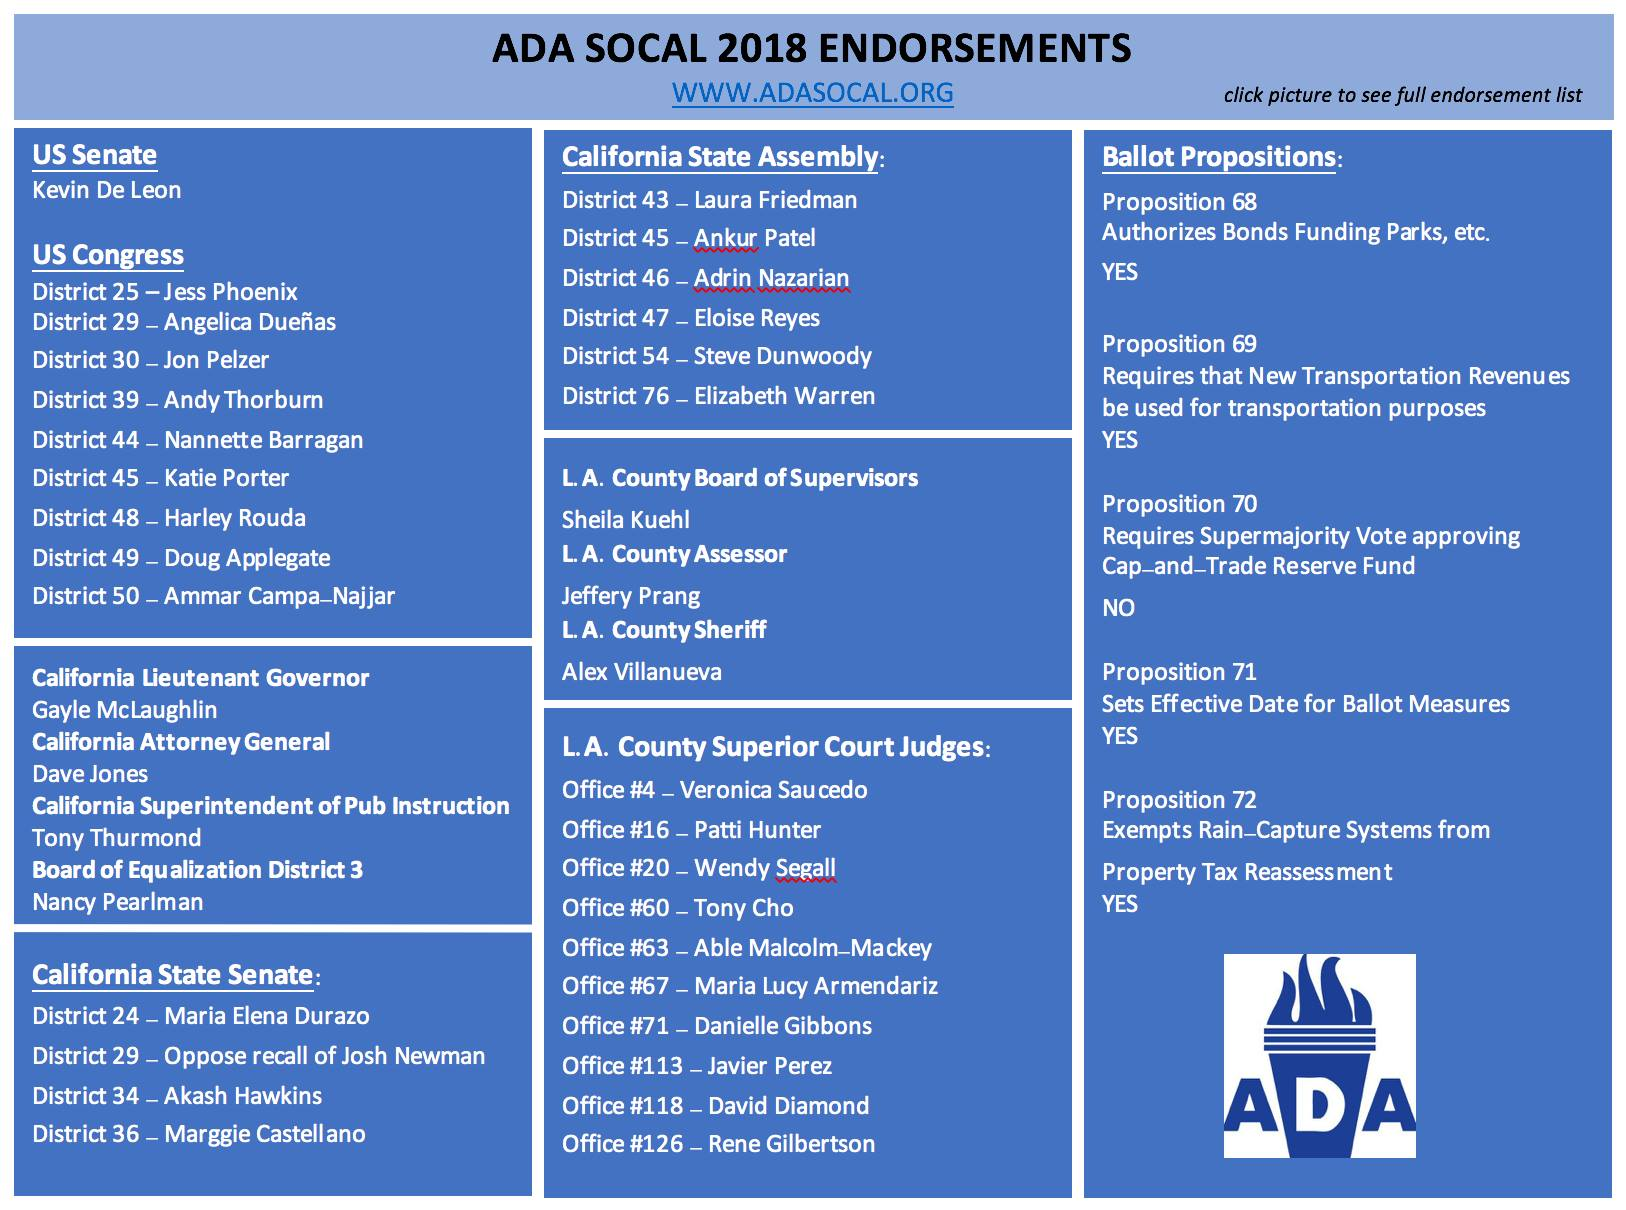 ADA SoCal Endorsements